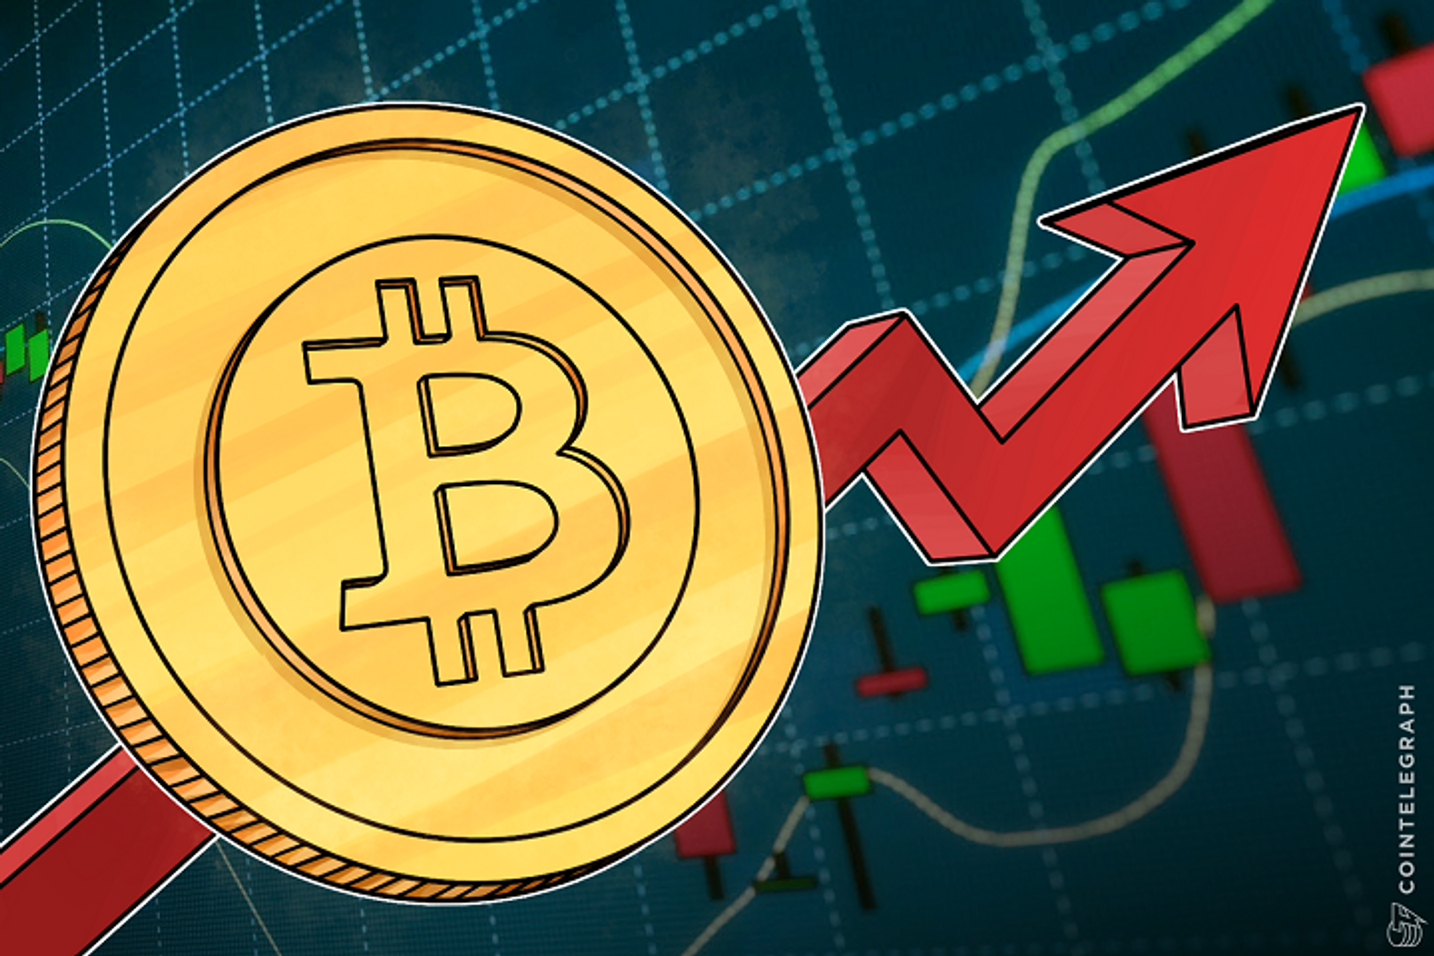 Bitcoin Price Strong at $1060, Chinese Exchanges And Regulators Form Alliance